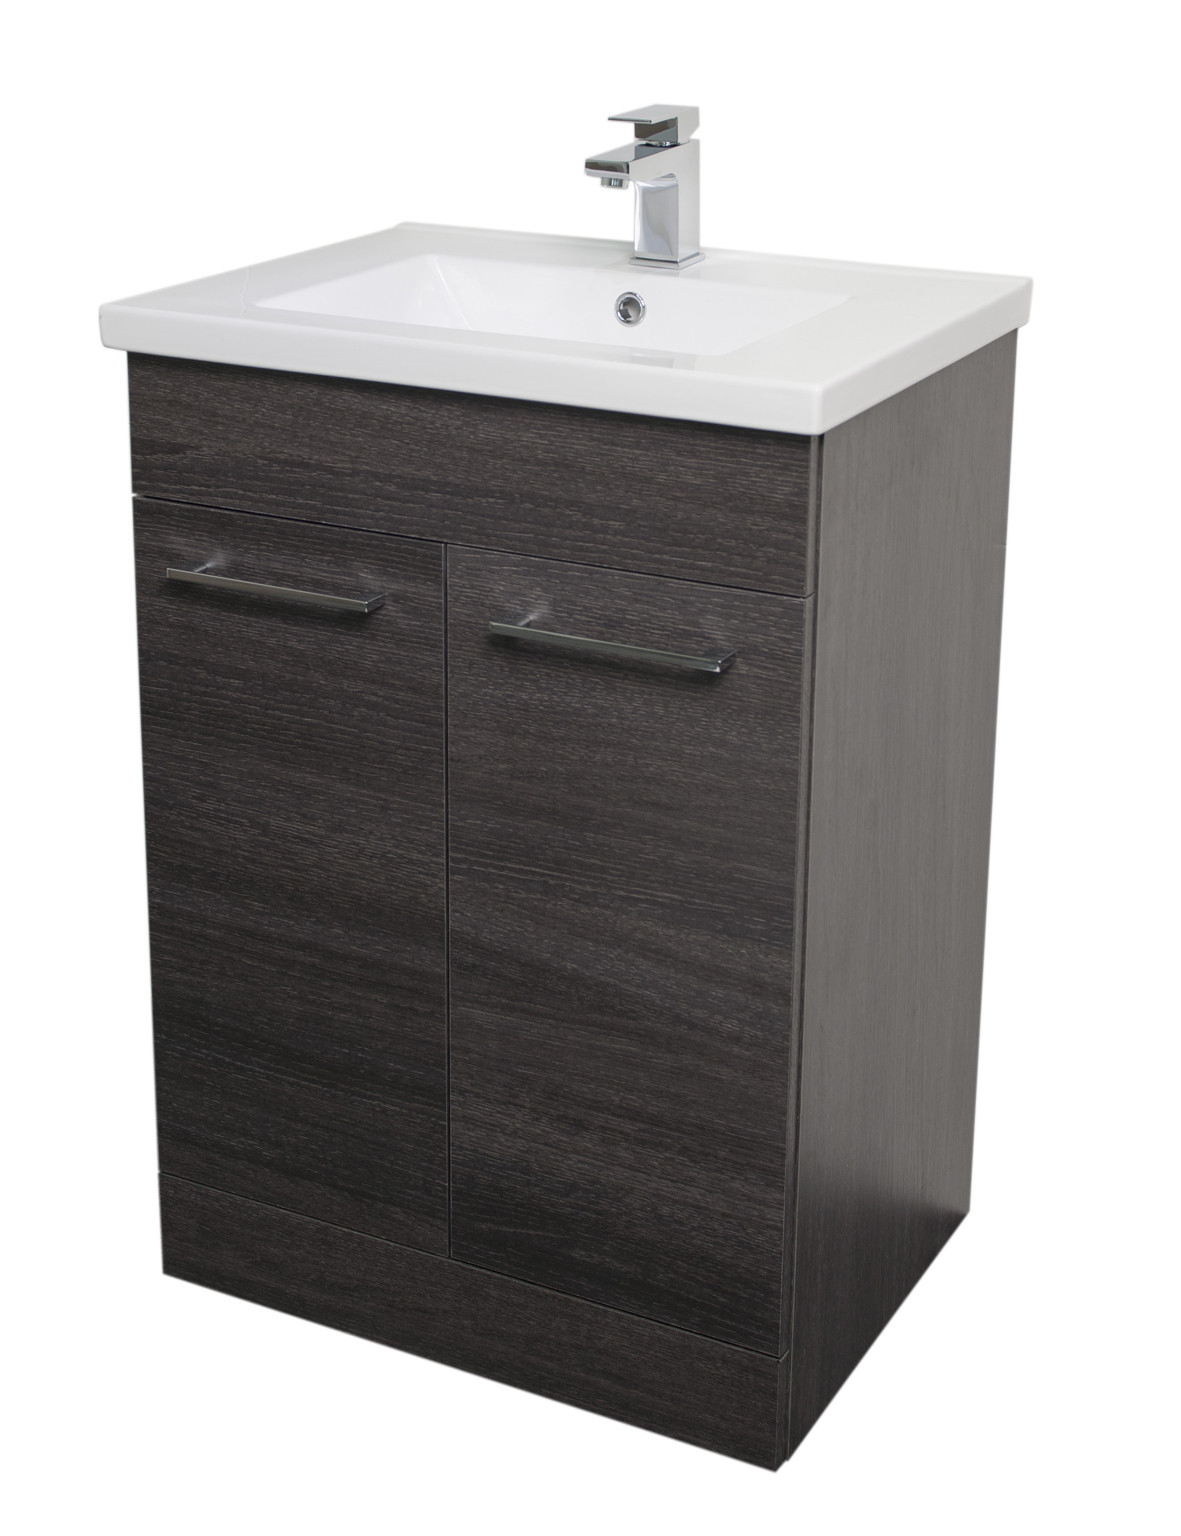 Napoli Black Oak 2 Door 600 Unit & Basin